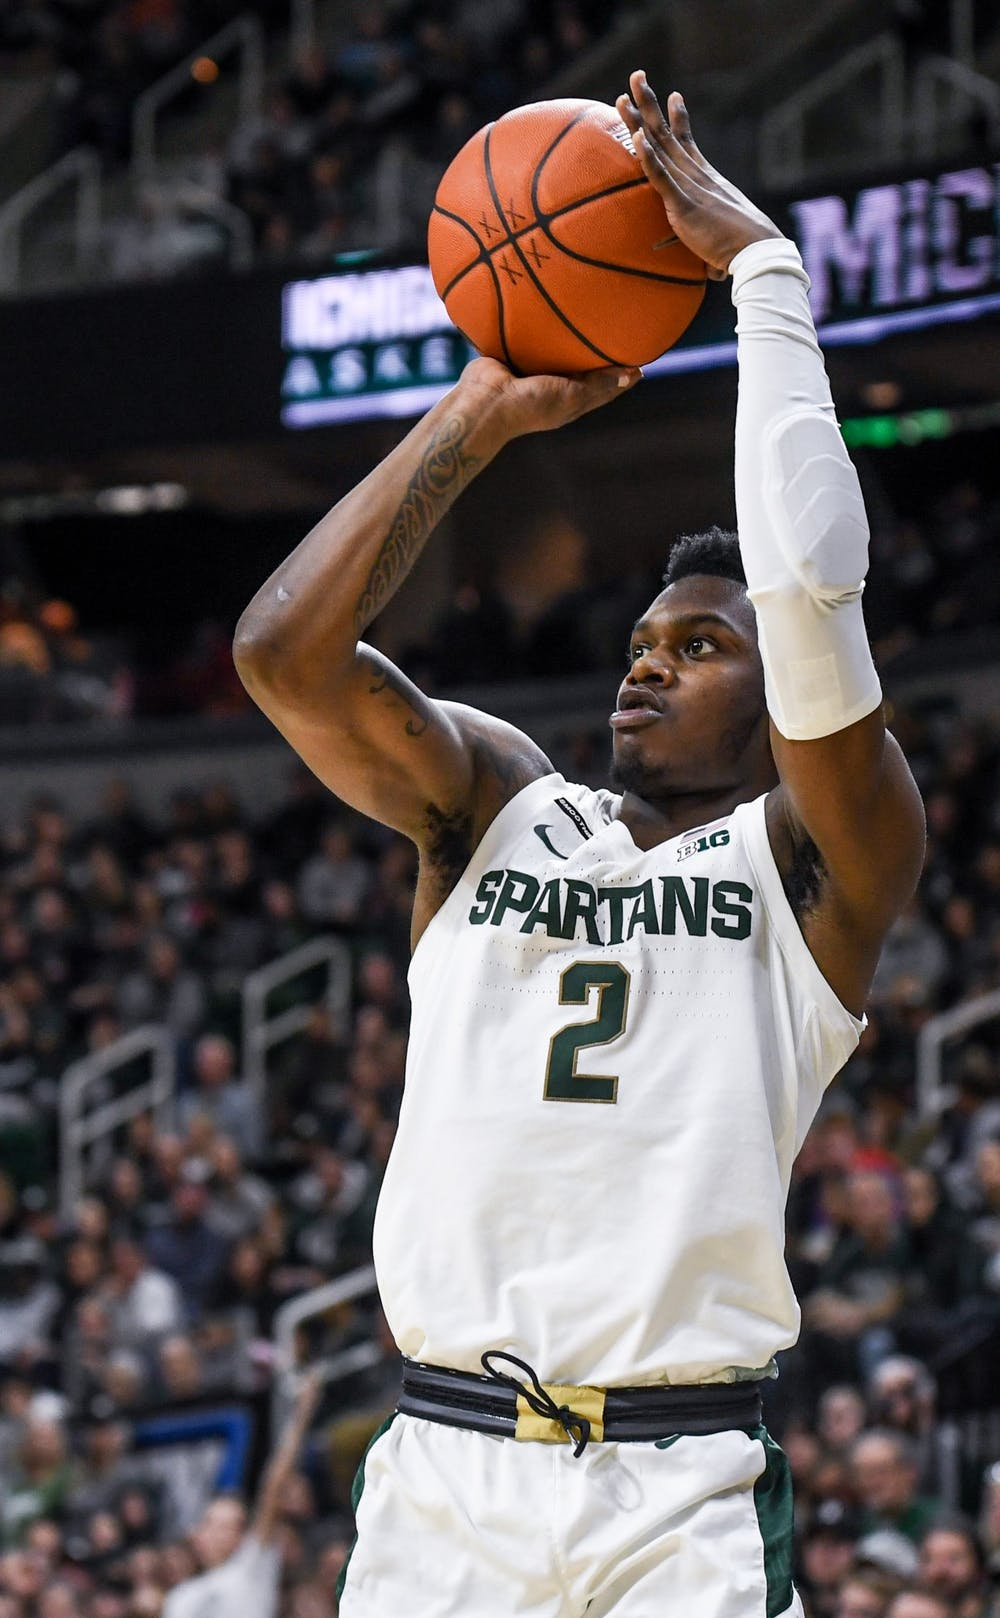 <p>Freshman guard Rocket Watts (2) shoots from deep during the game against Western Michigan Dec. 29, 2019 at the Breslin Center. The Spartans defeated the Broncos, 95-62.</p>